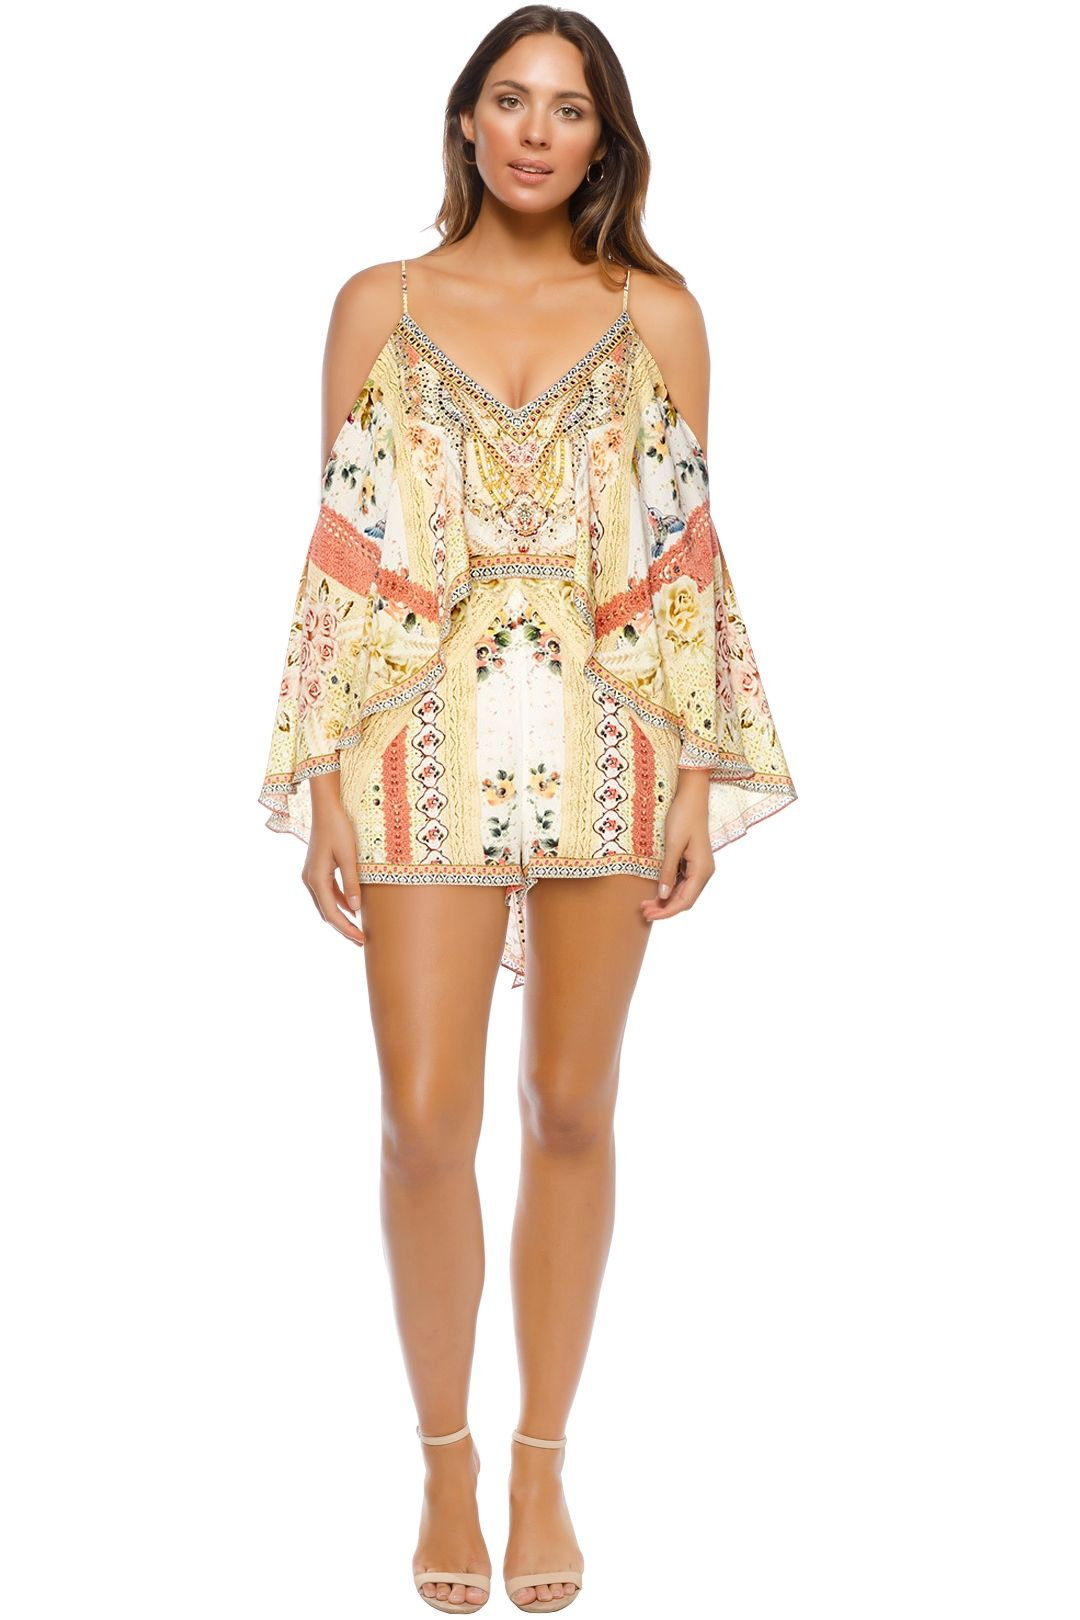 Camilla - My Summer Love  Double Layer Playsuit - Cream Print - Front